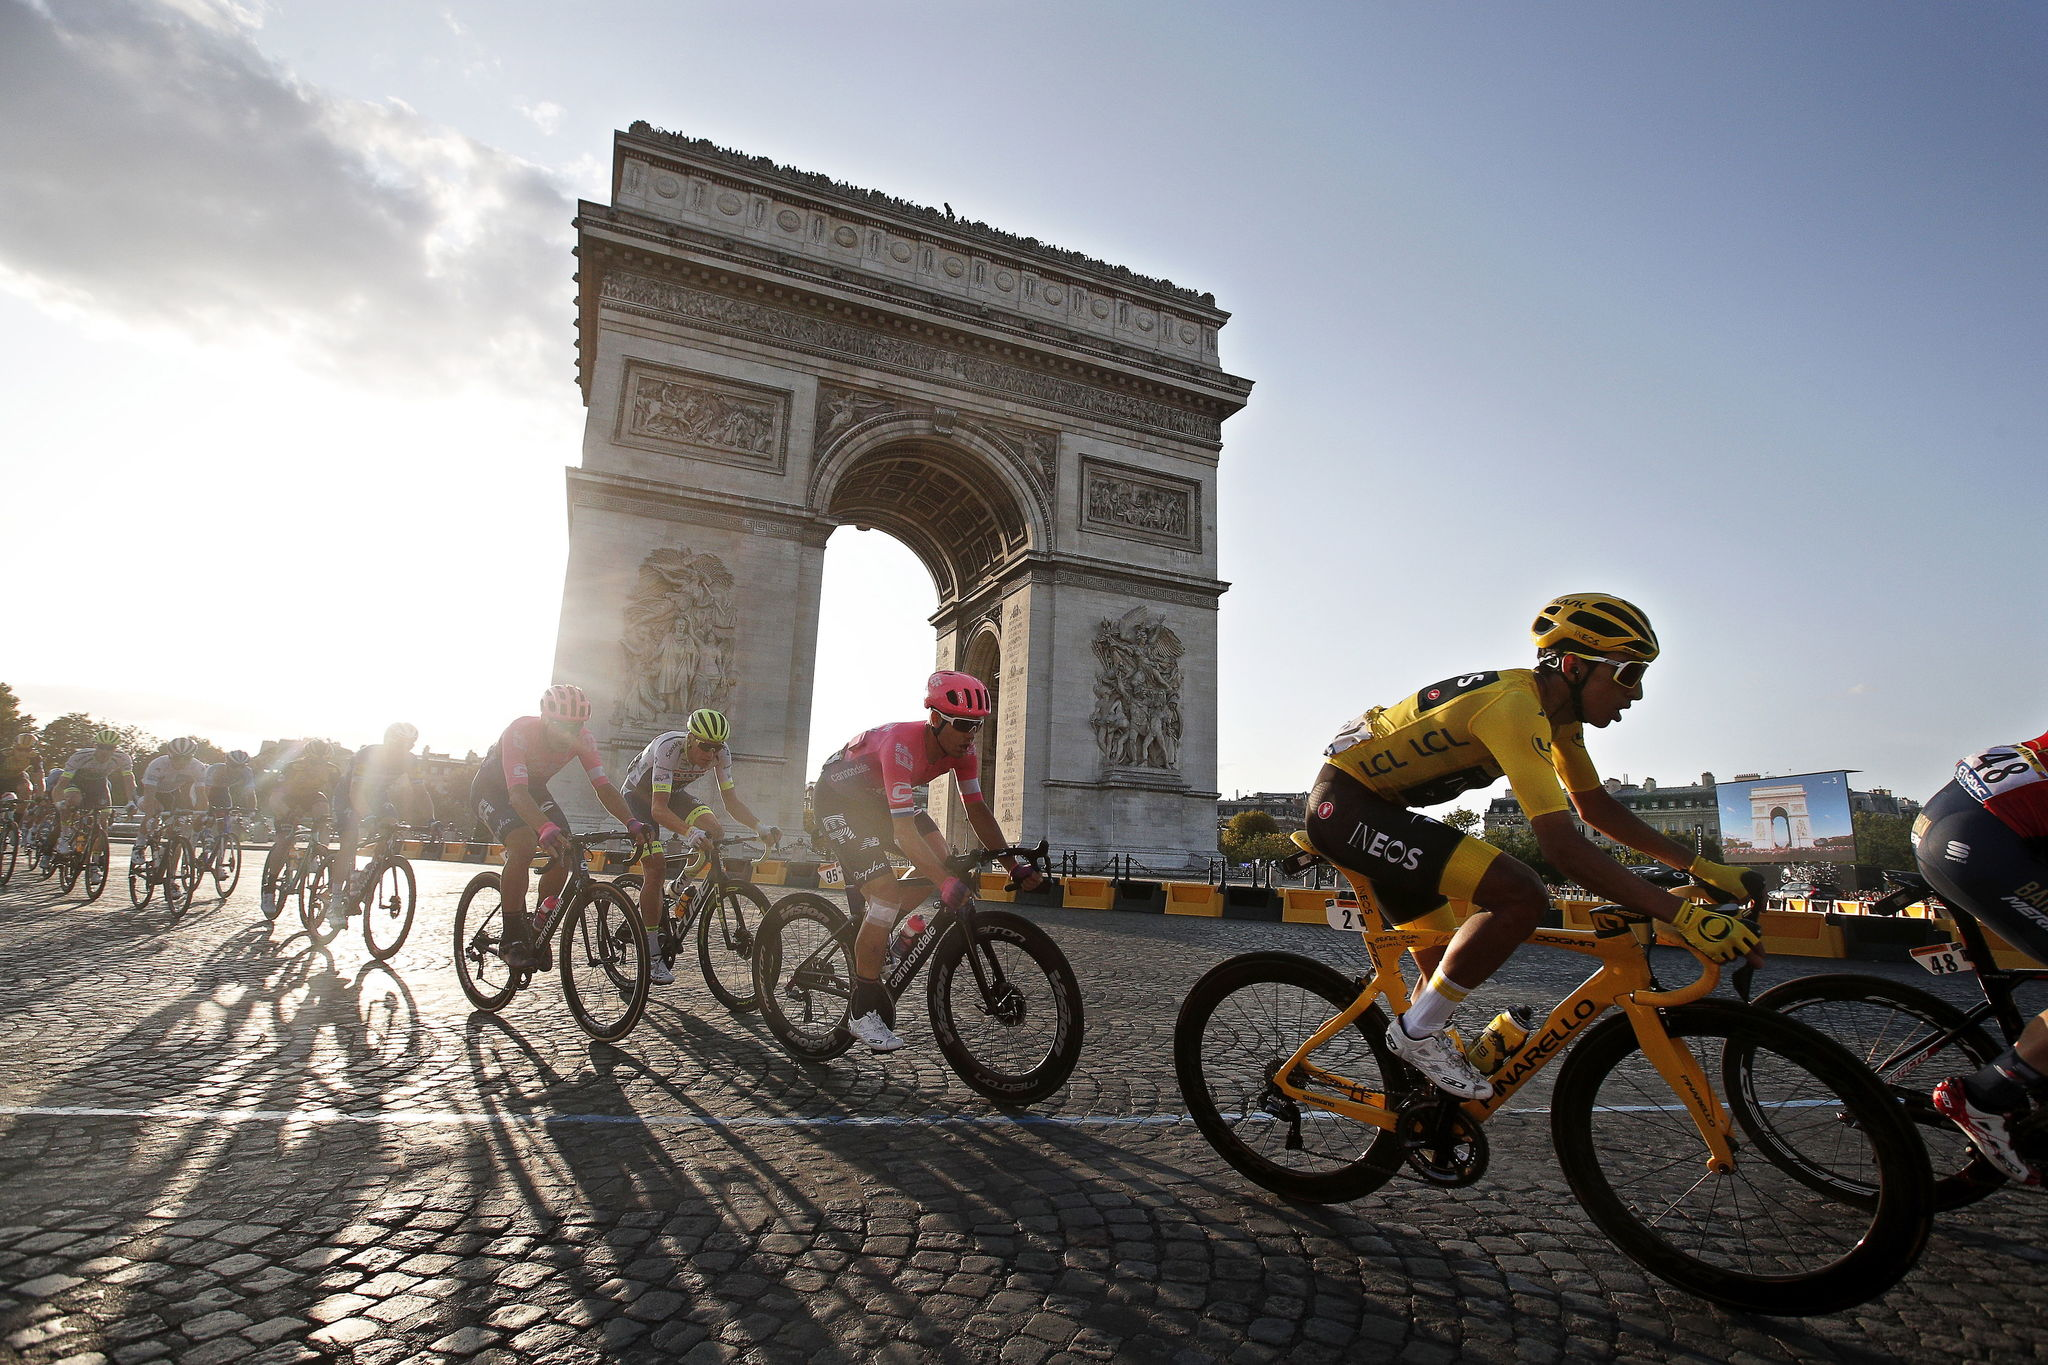 Paris (France).- (FILE) Colombias Egan Bernal (R) of Team Ineos wears the overall leaders yellow jersey as he passes with the pack by the Arc de Triomphe during the 21st and final stage of the 106th edition of the lt;HIT gt;Tour lt;/HIT gt; de France cycling race over 128km between Rambouillet and the Champs Elysees in Paris, France, 28 July 2019, re-issued 01 April 2020. As media reports, vice president of the World Cycling Association UCI, Renato Di Rocco said, the start of the lt;HIT gt;Tour lt;/HIT gt; de France 2020 might be postponed to either 01 July, 15th July or 01 of August, but the TDF should take place due to the financial importance for the teams, and that the organizers want to wait with a decision until 15 May. (Ciclismo, lt;HIT gt;Francia lt;/HIT gt;) EFE/EPA/GUILLAUME HORCAJUELO *** Local Caption *** 55367950